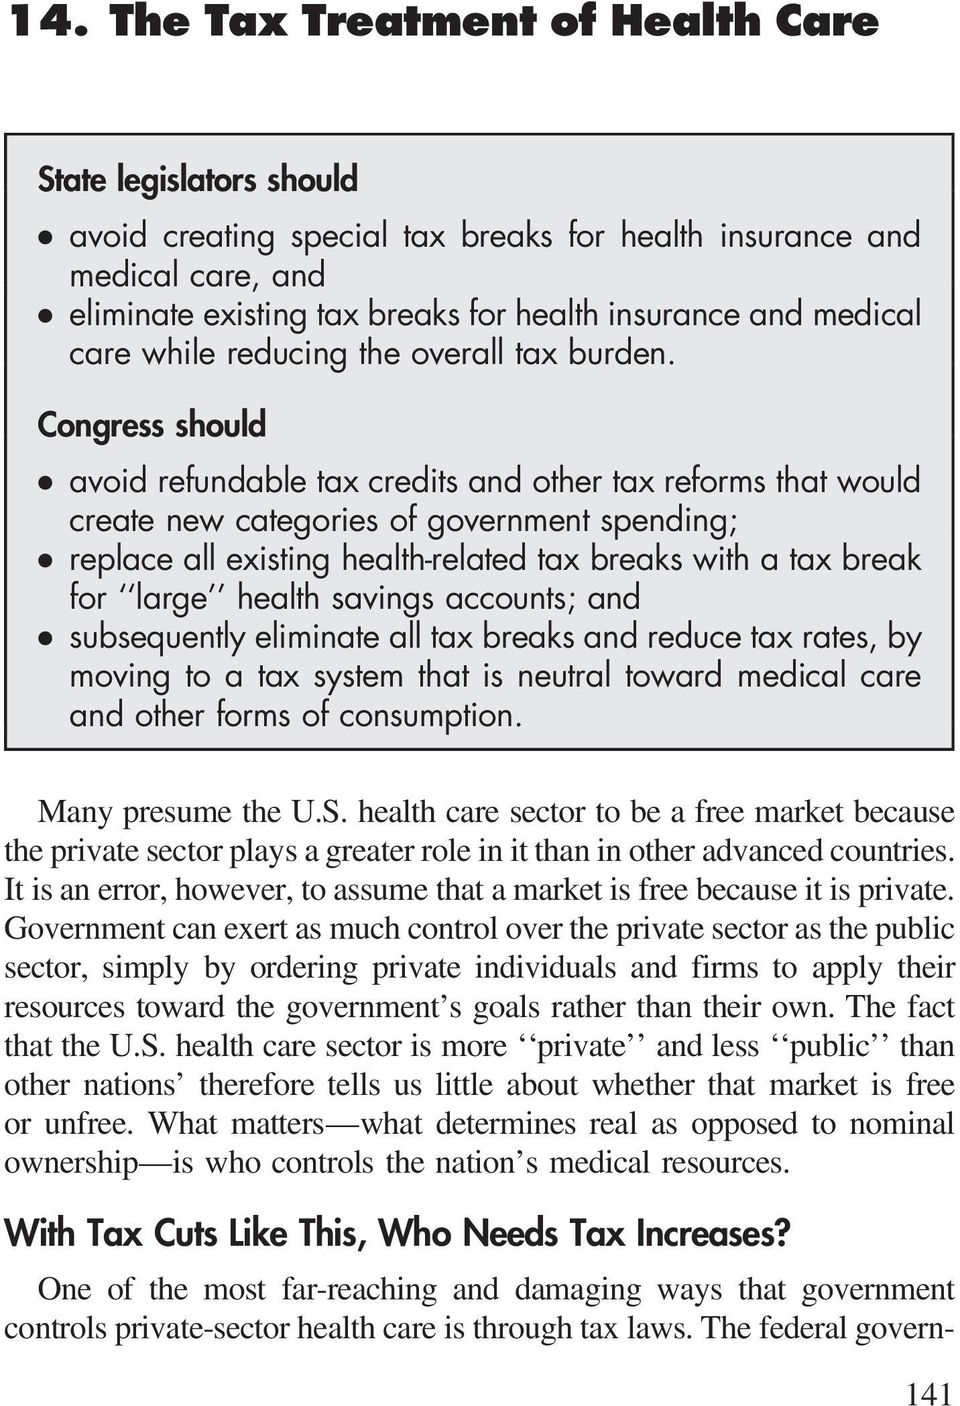 Congress should avoid refundable tax credits and other tax reforms that would create new categories of government spending; replace all existing health-related tax breaks with a tax break for large